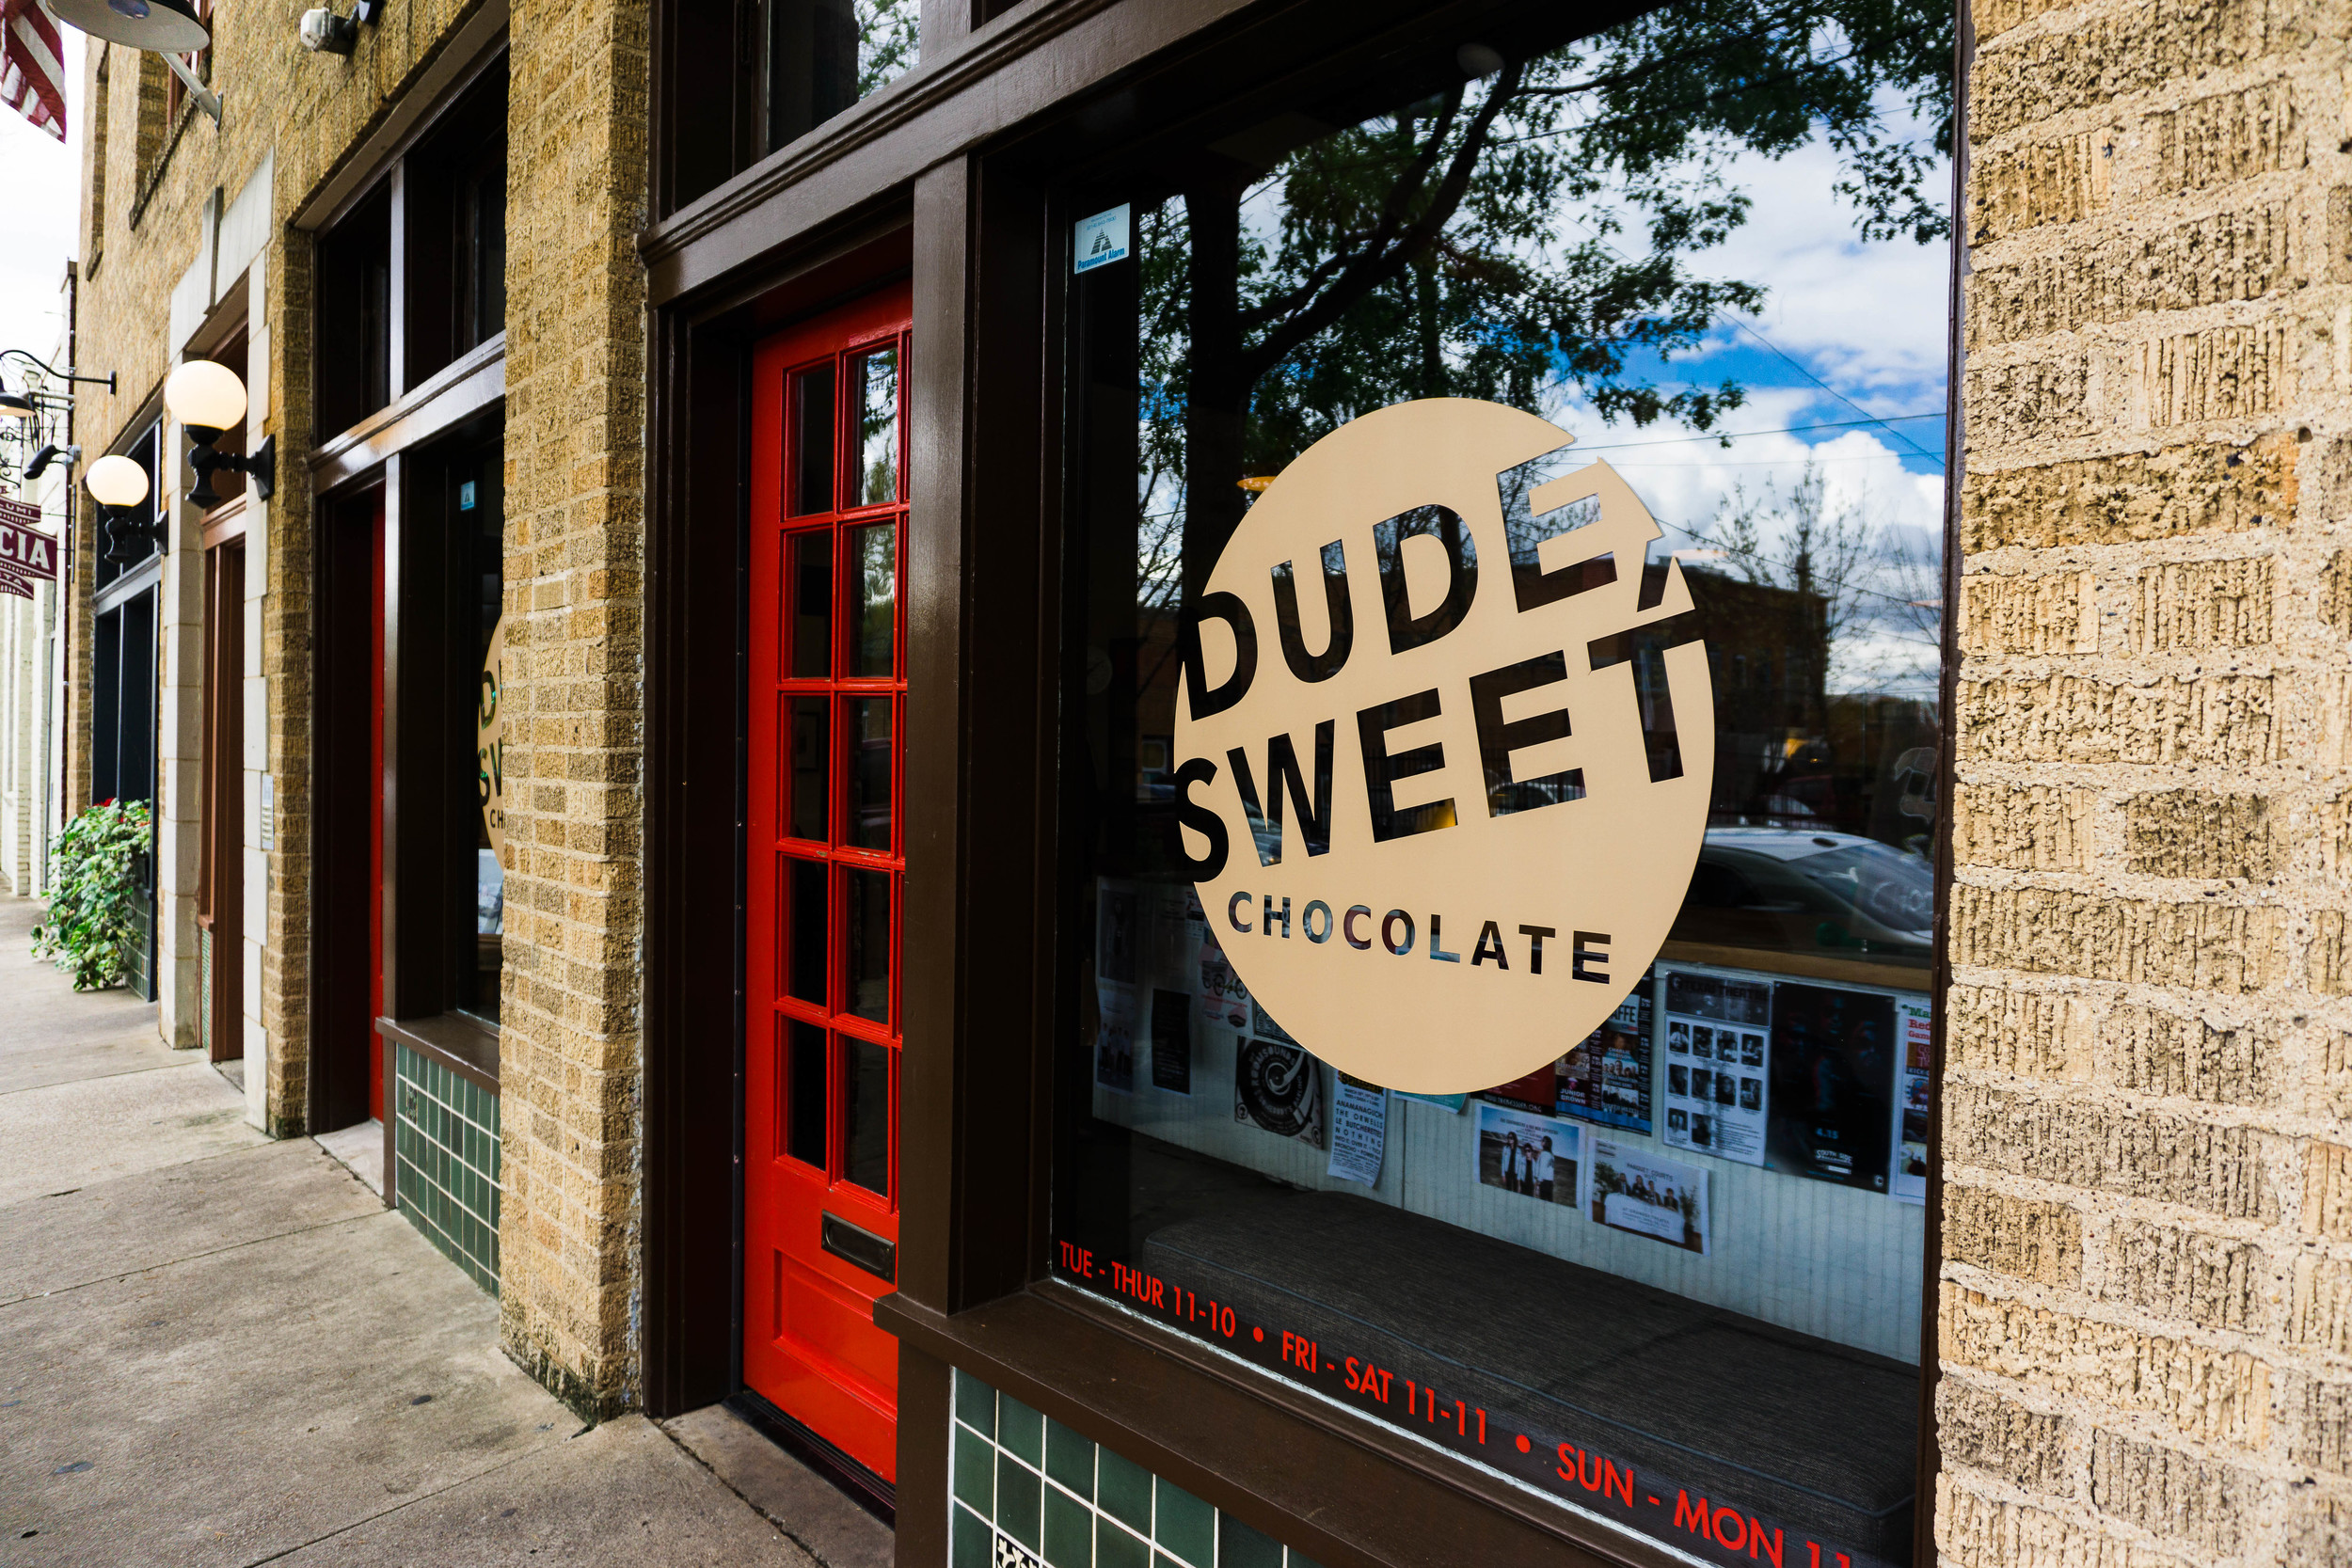 Dude, Sweet Chocolate shop in the Bishop Arts District. The owner was pretty excited to show us his photo with Wayne Coyne when we said we were from OKC.